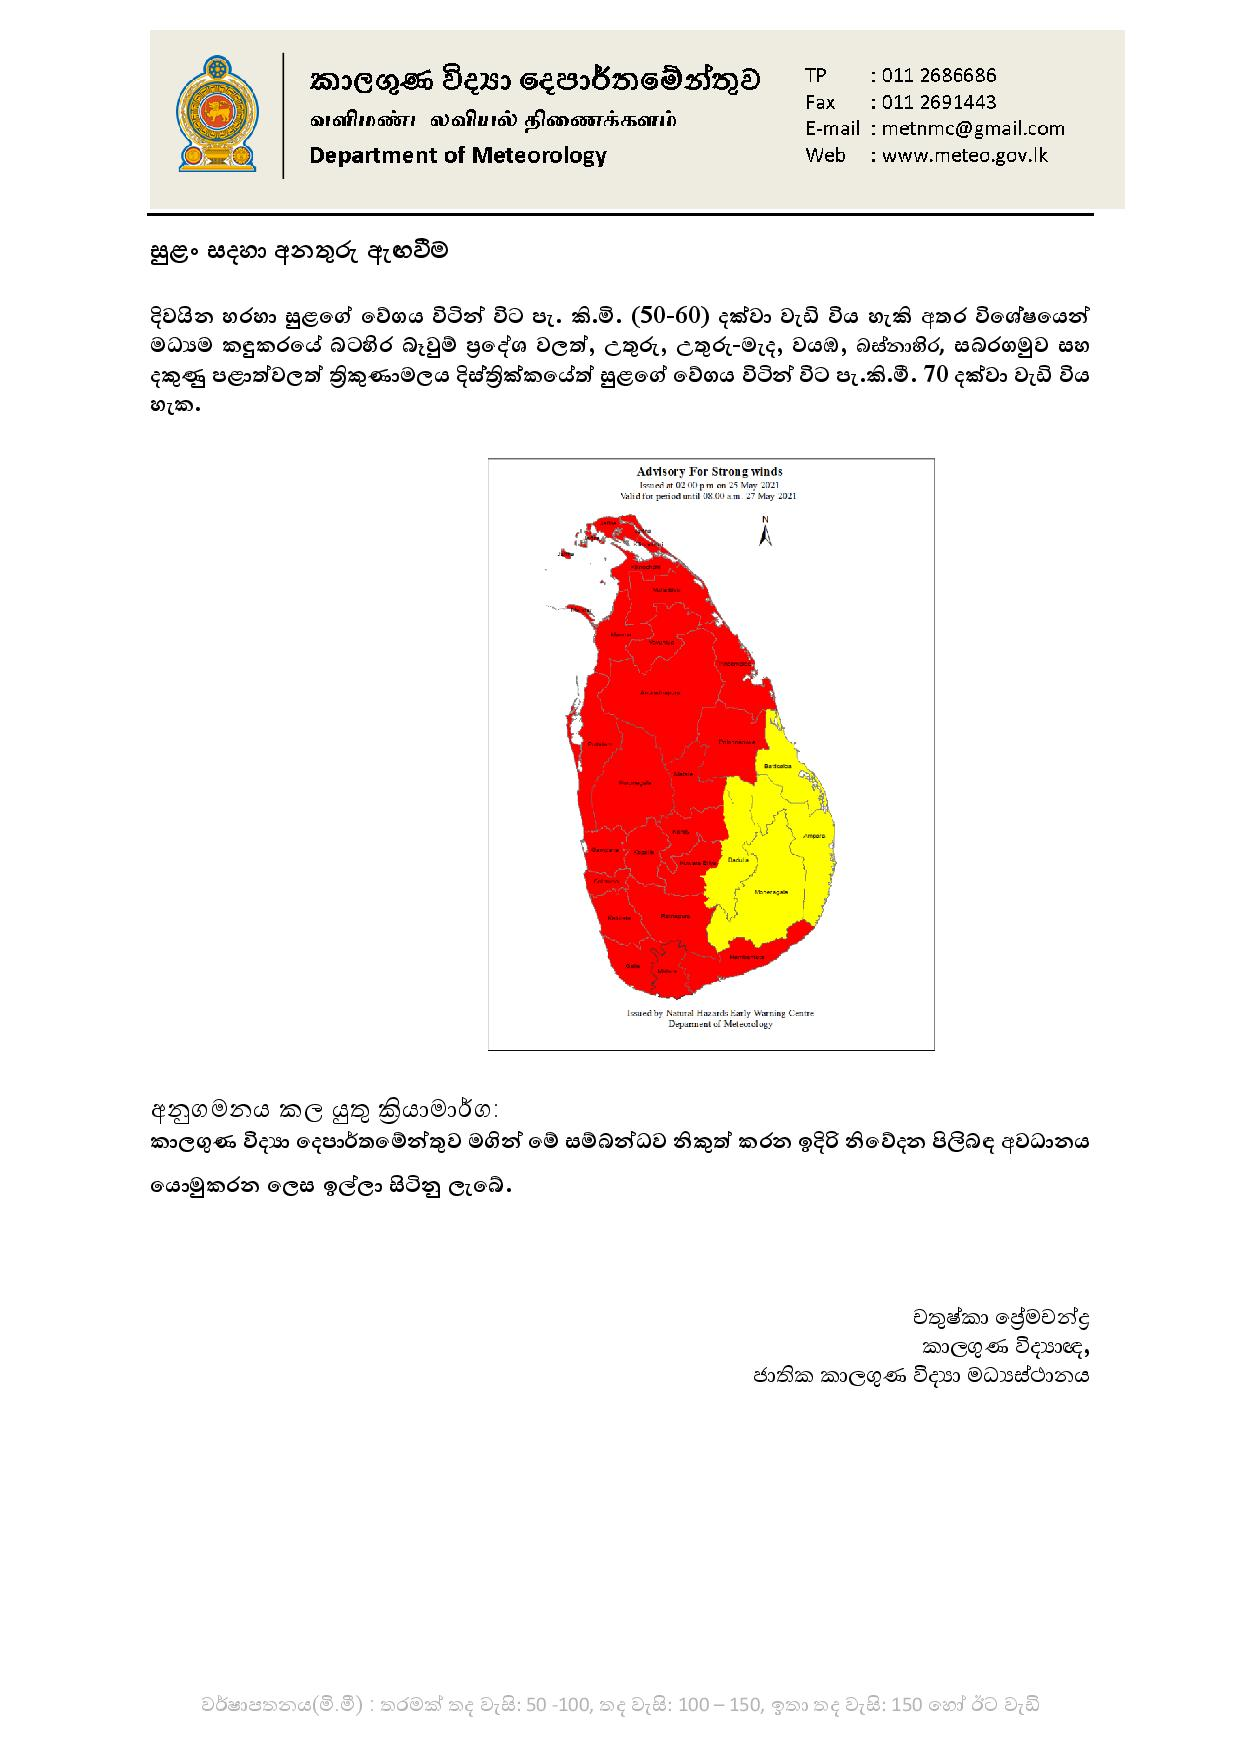 weather warning report